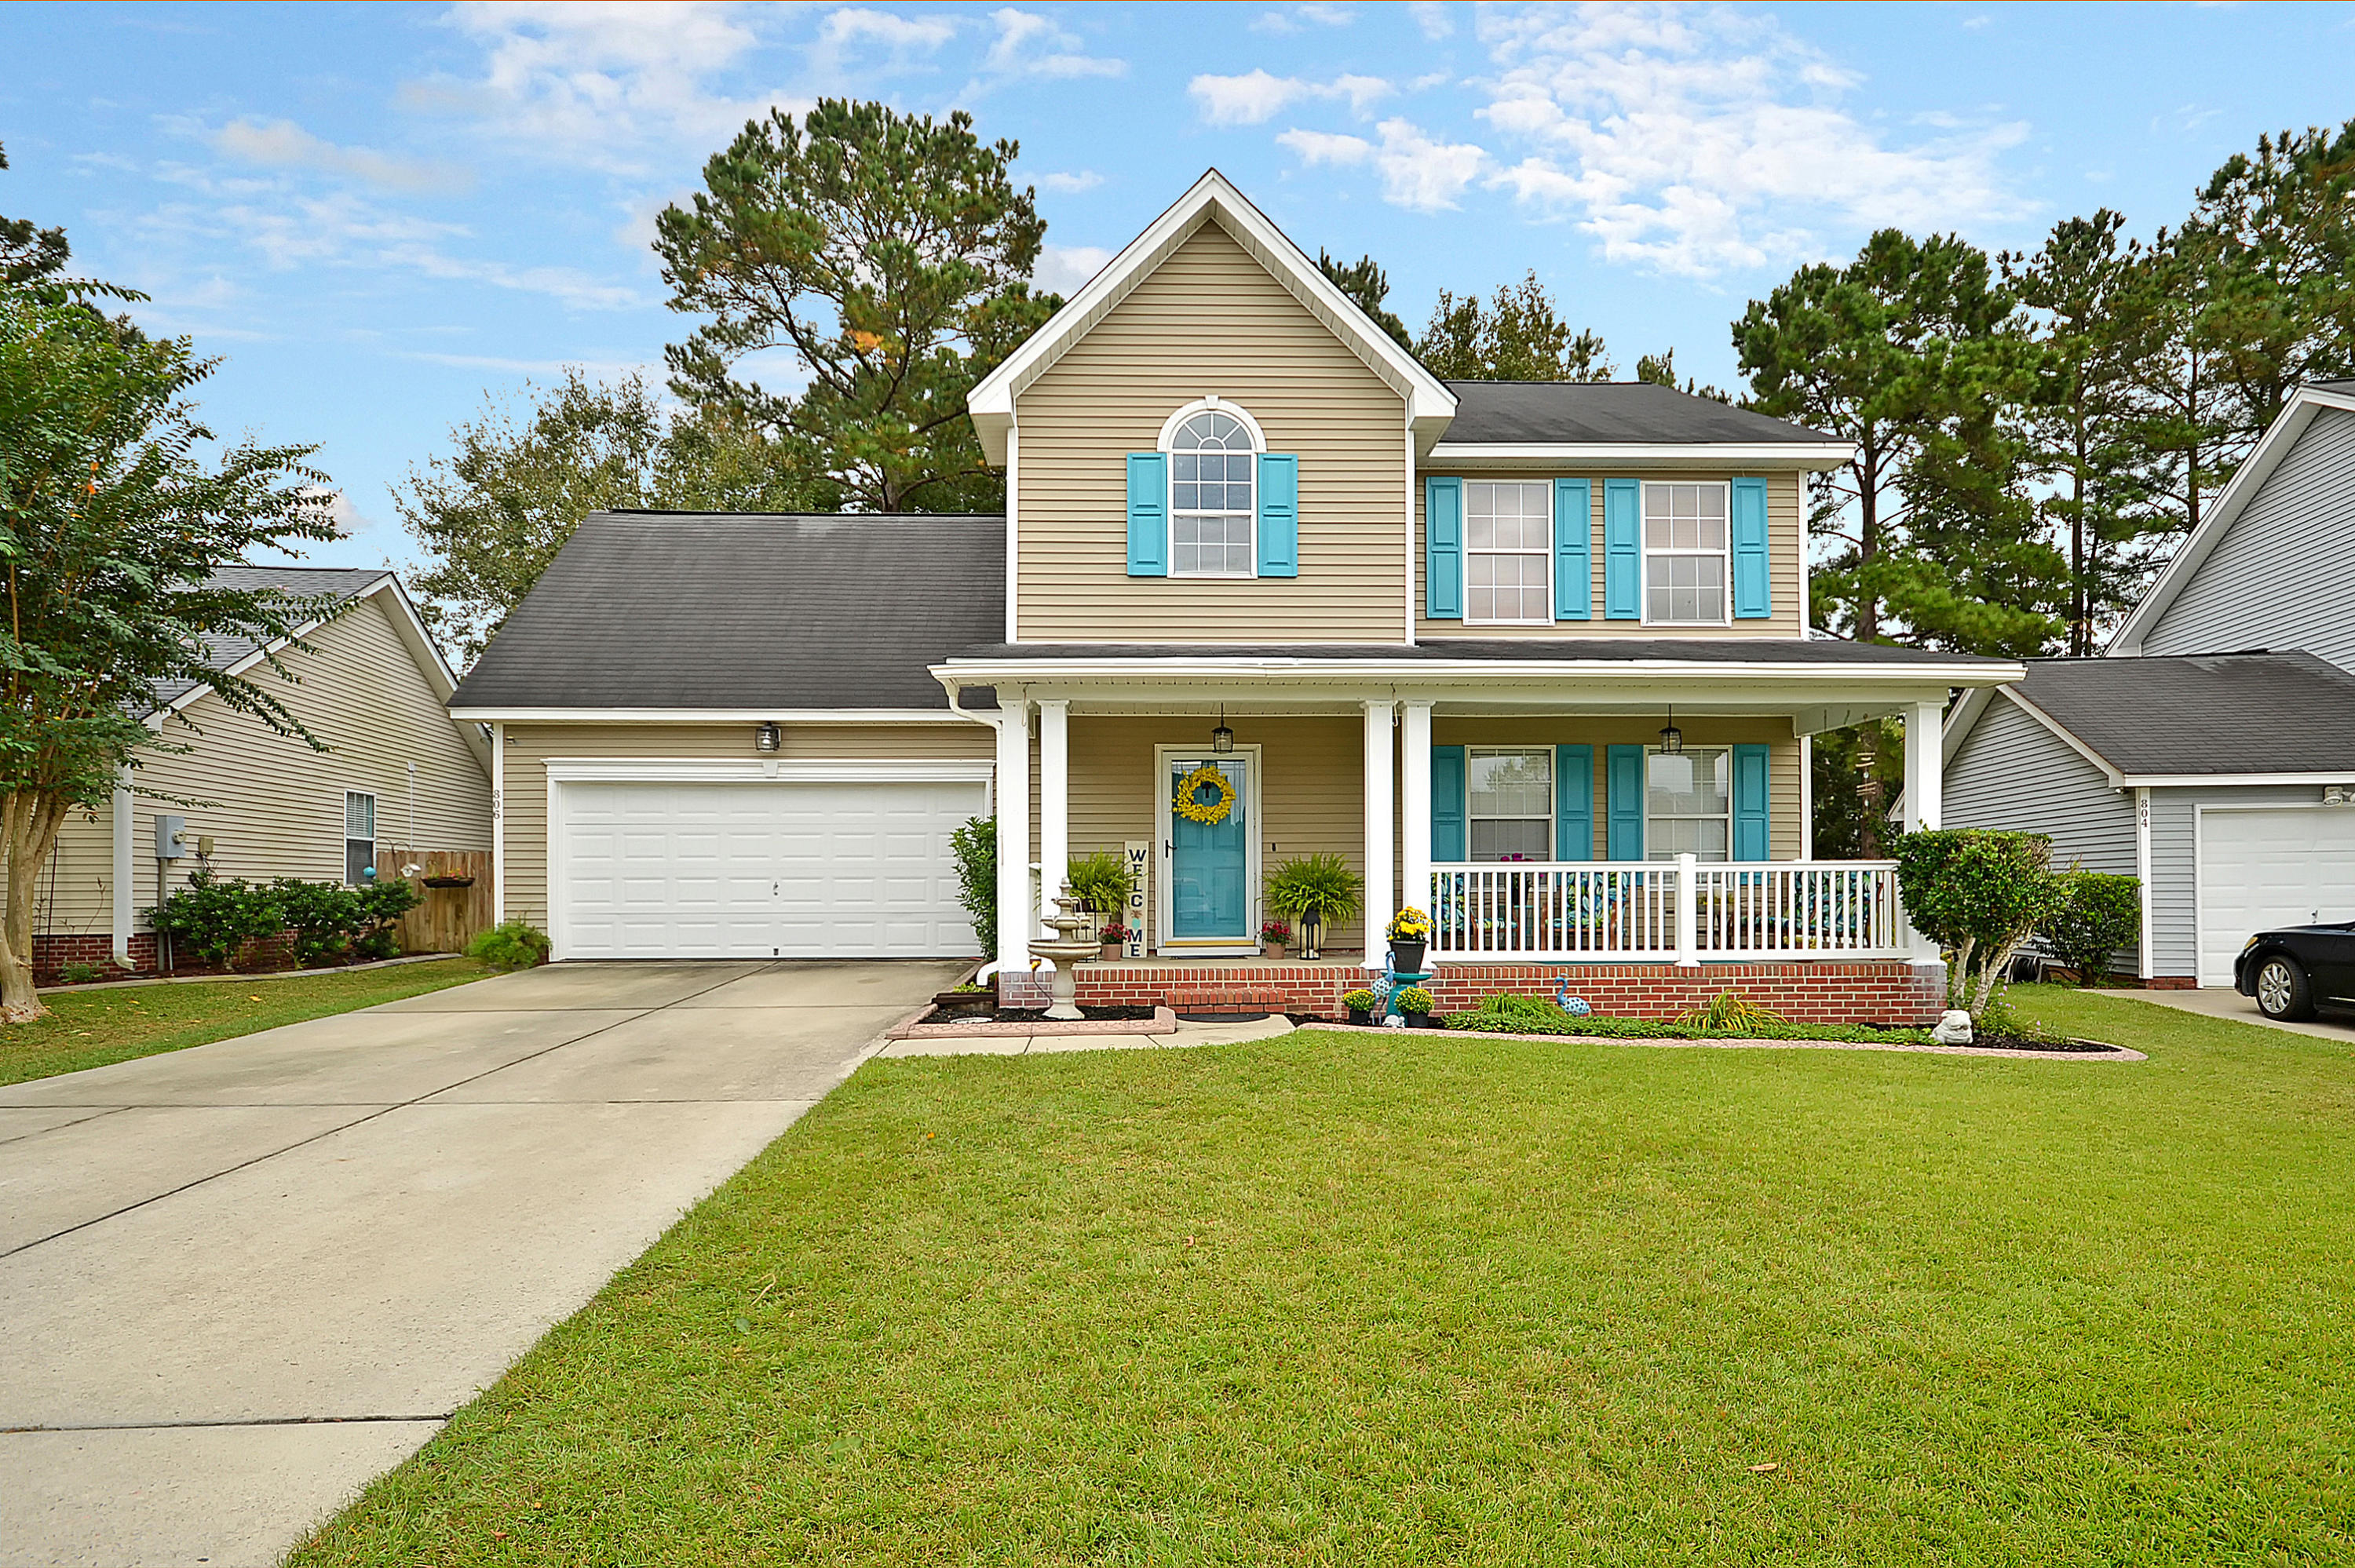 806 W Saltash Alley Goose Creek, SC 29445